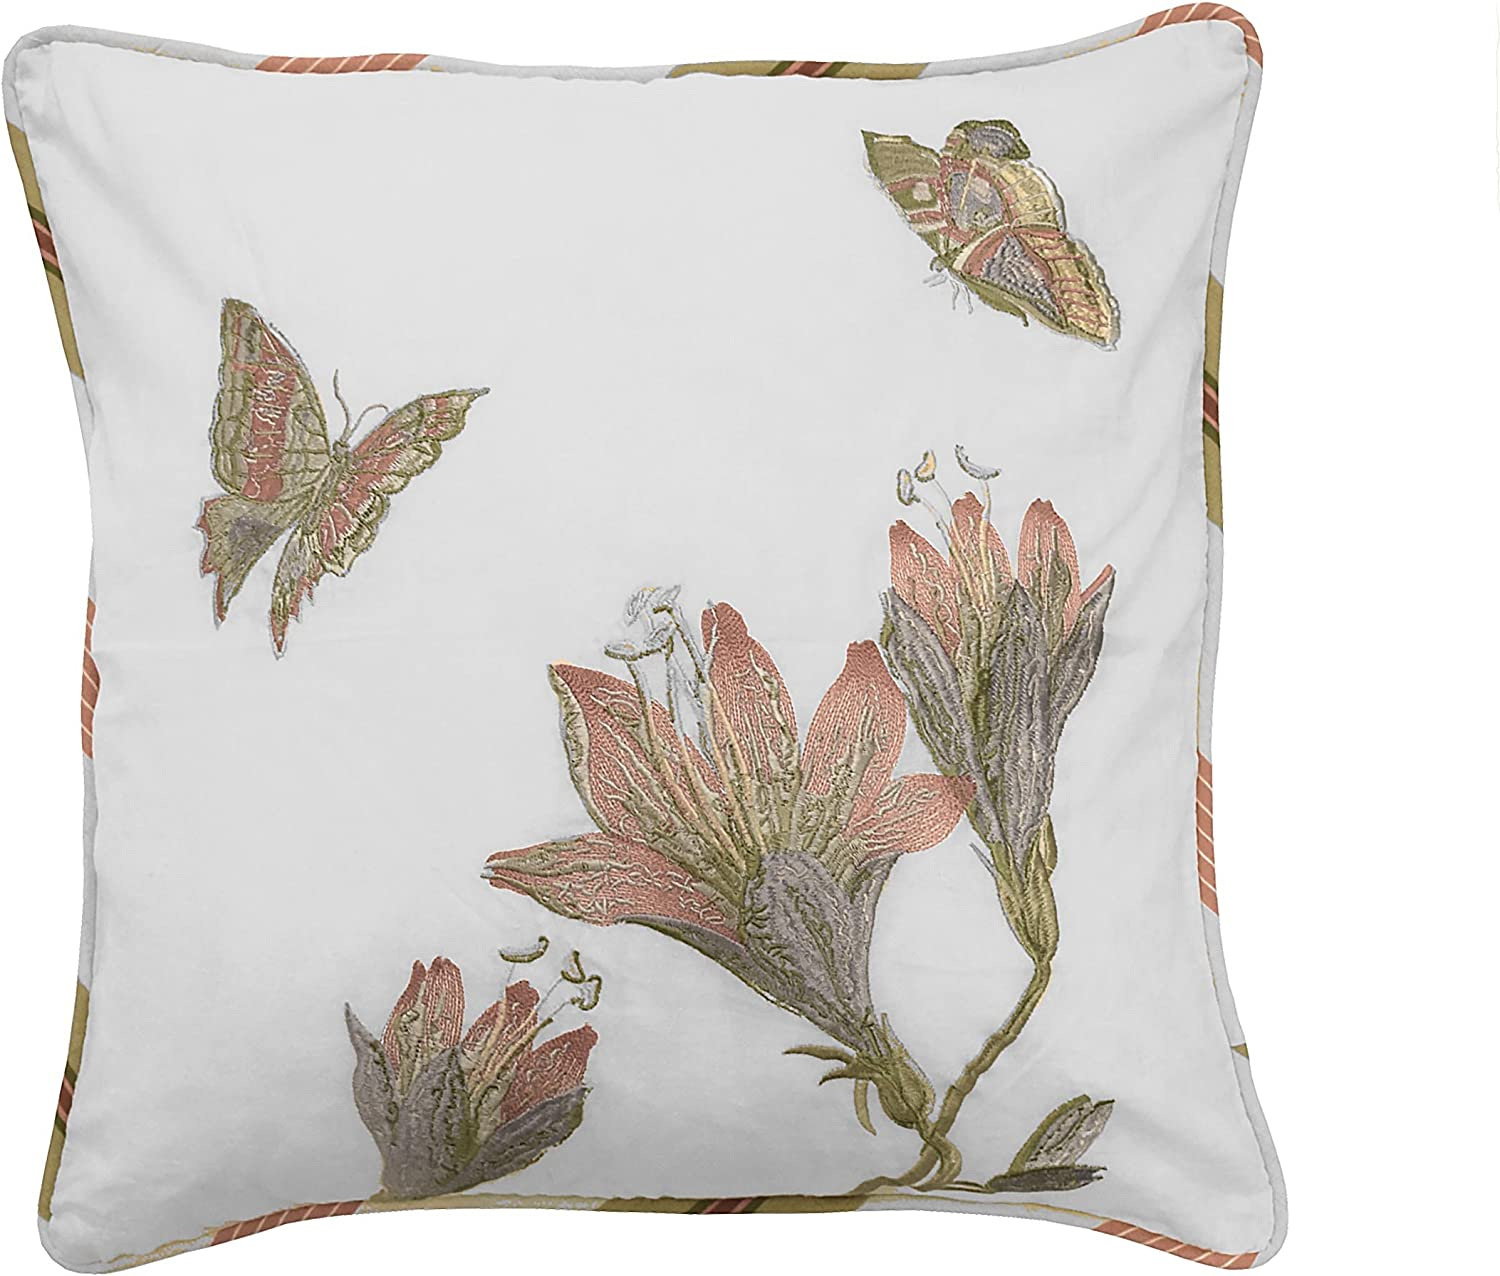 Waverly Laurel Springs Opal Pillow Max 45% OFF x Embroidered Super beauty product restock quality top 18